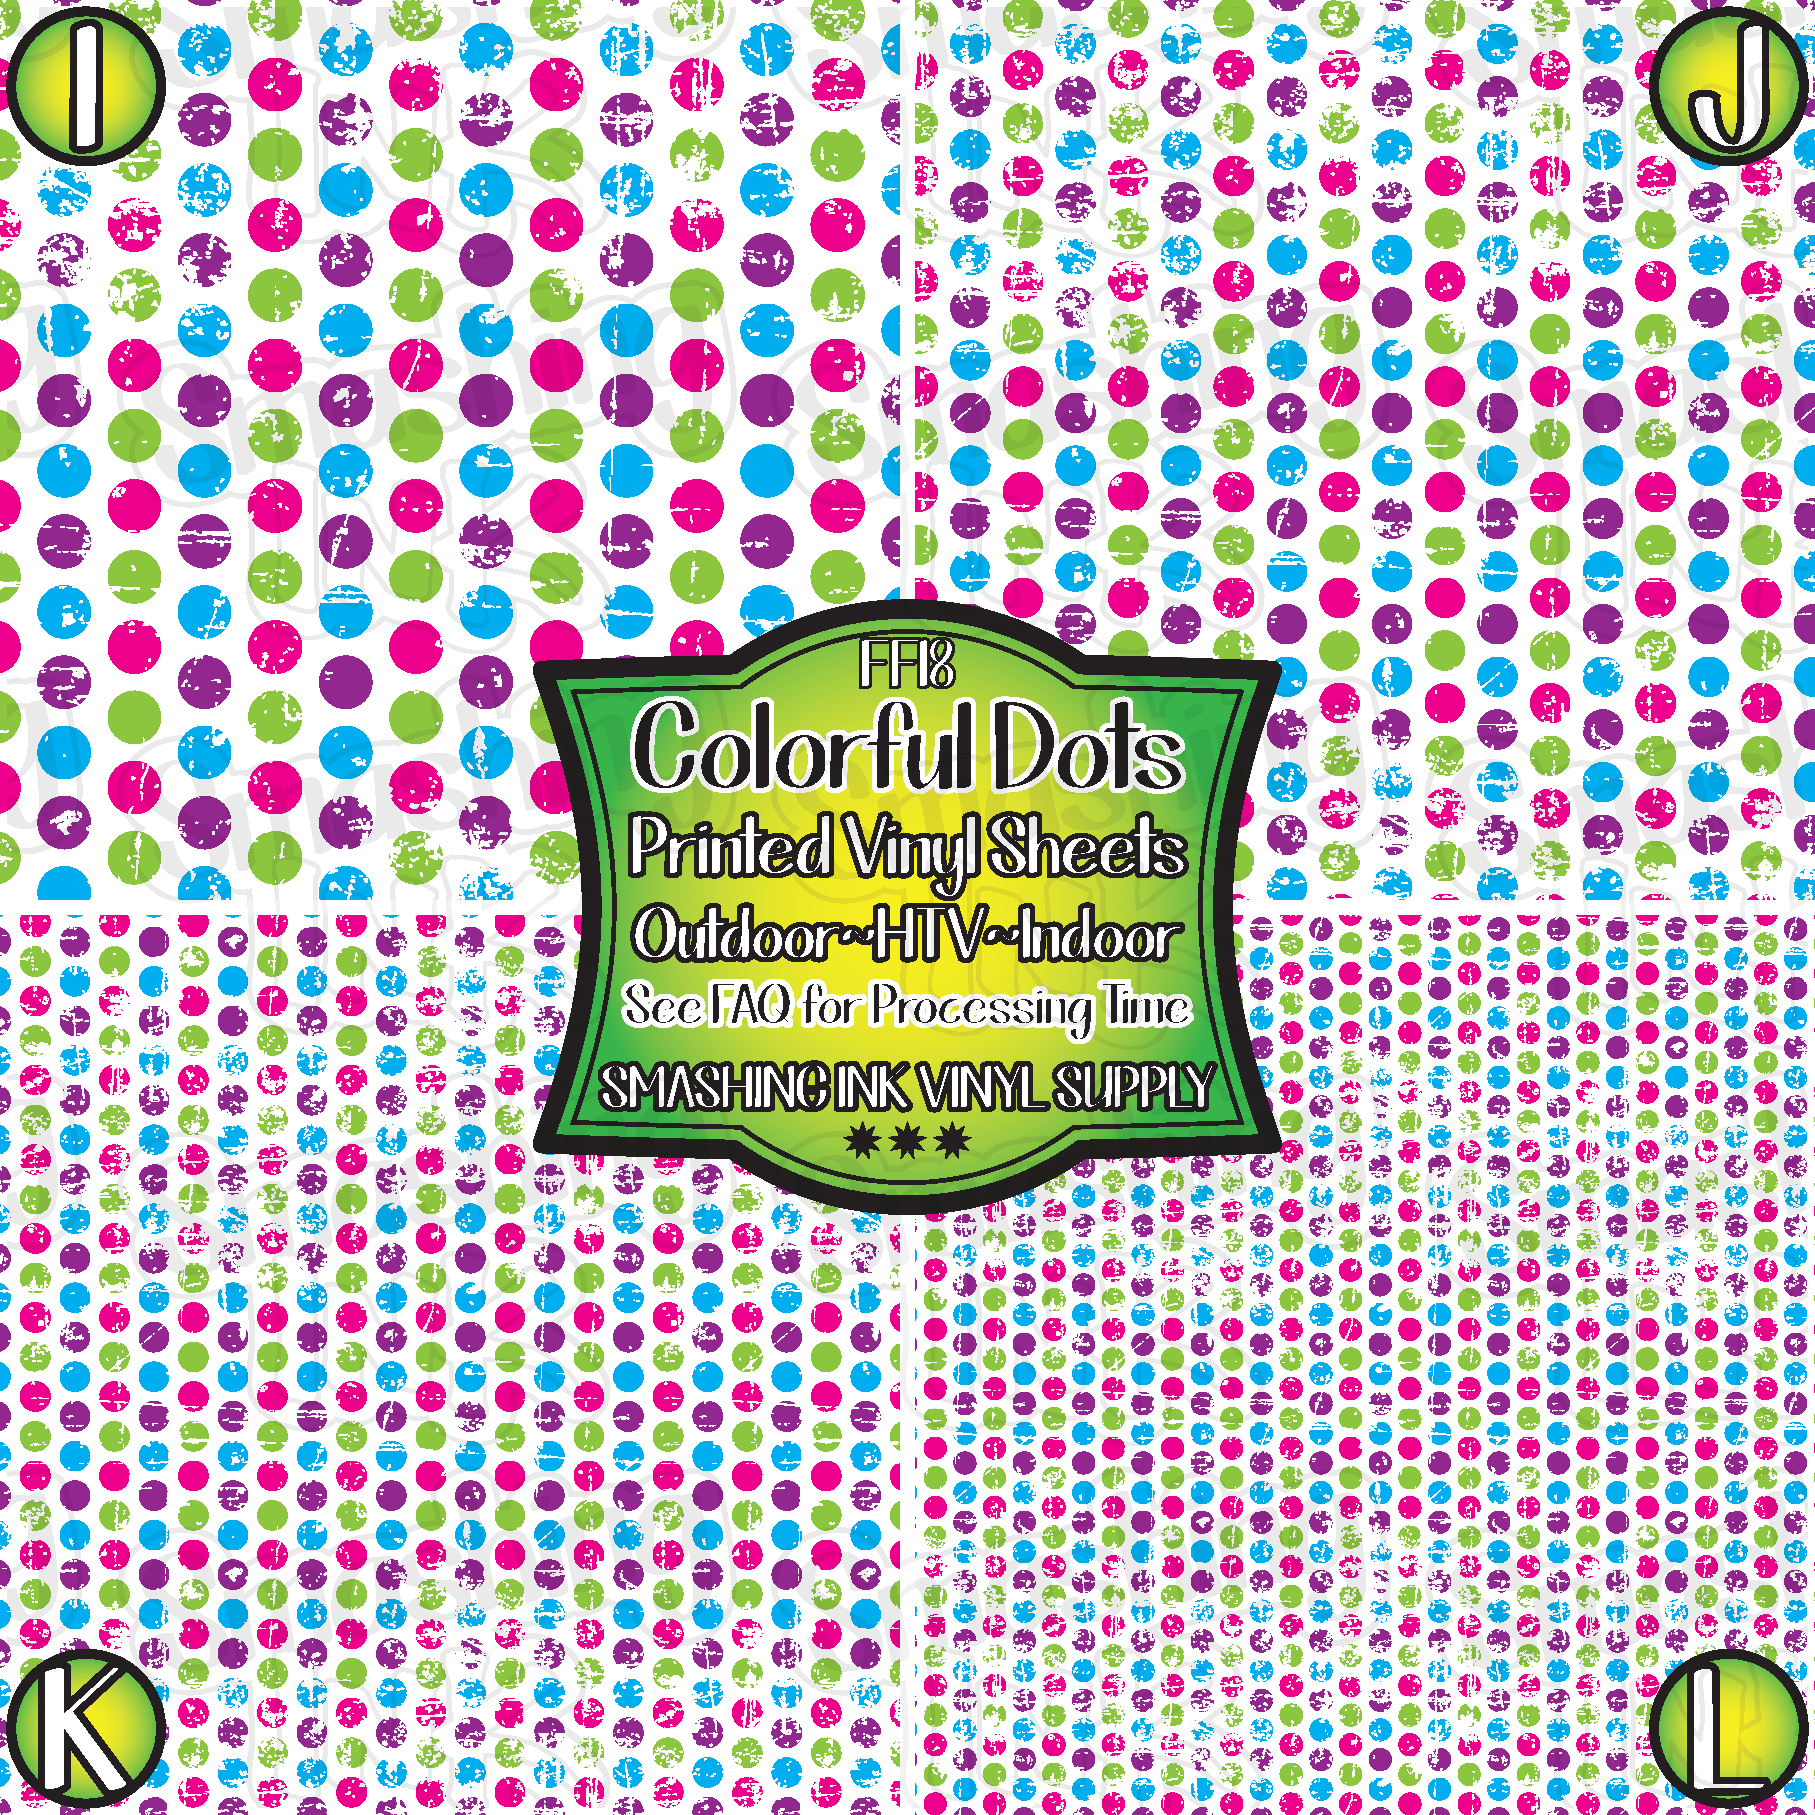 Grunge Colorful Dots - Pattern Vinyl (READY IN 3 BUS DAYS)